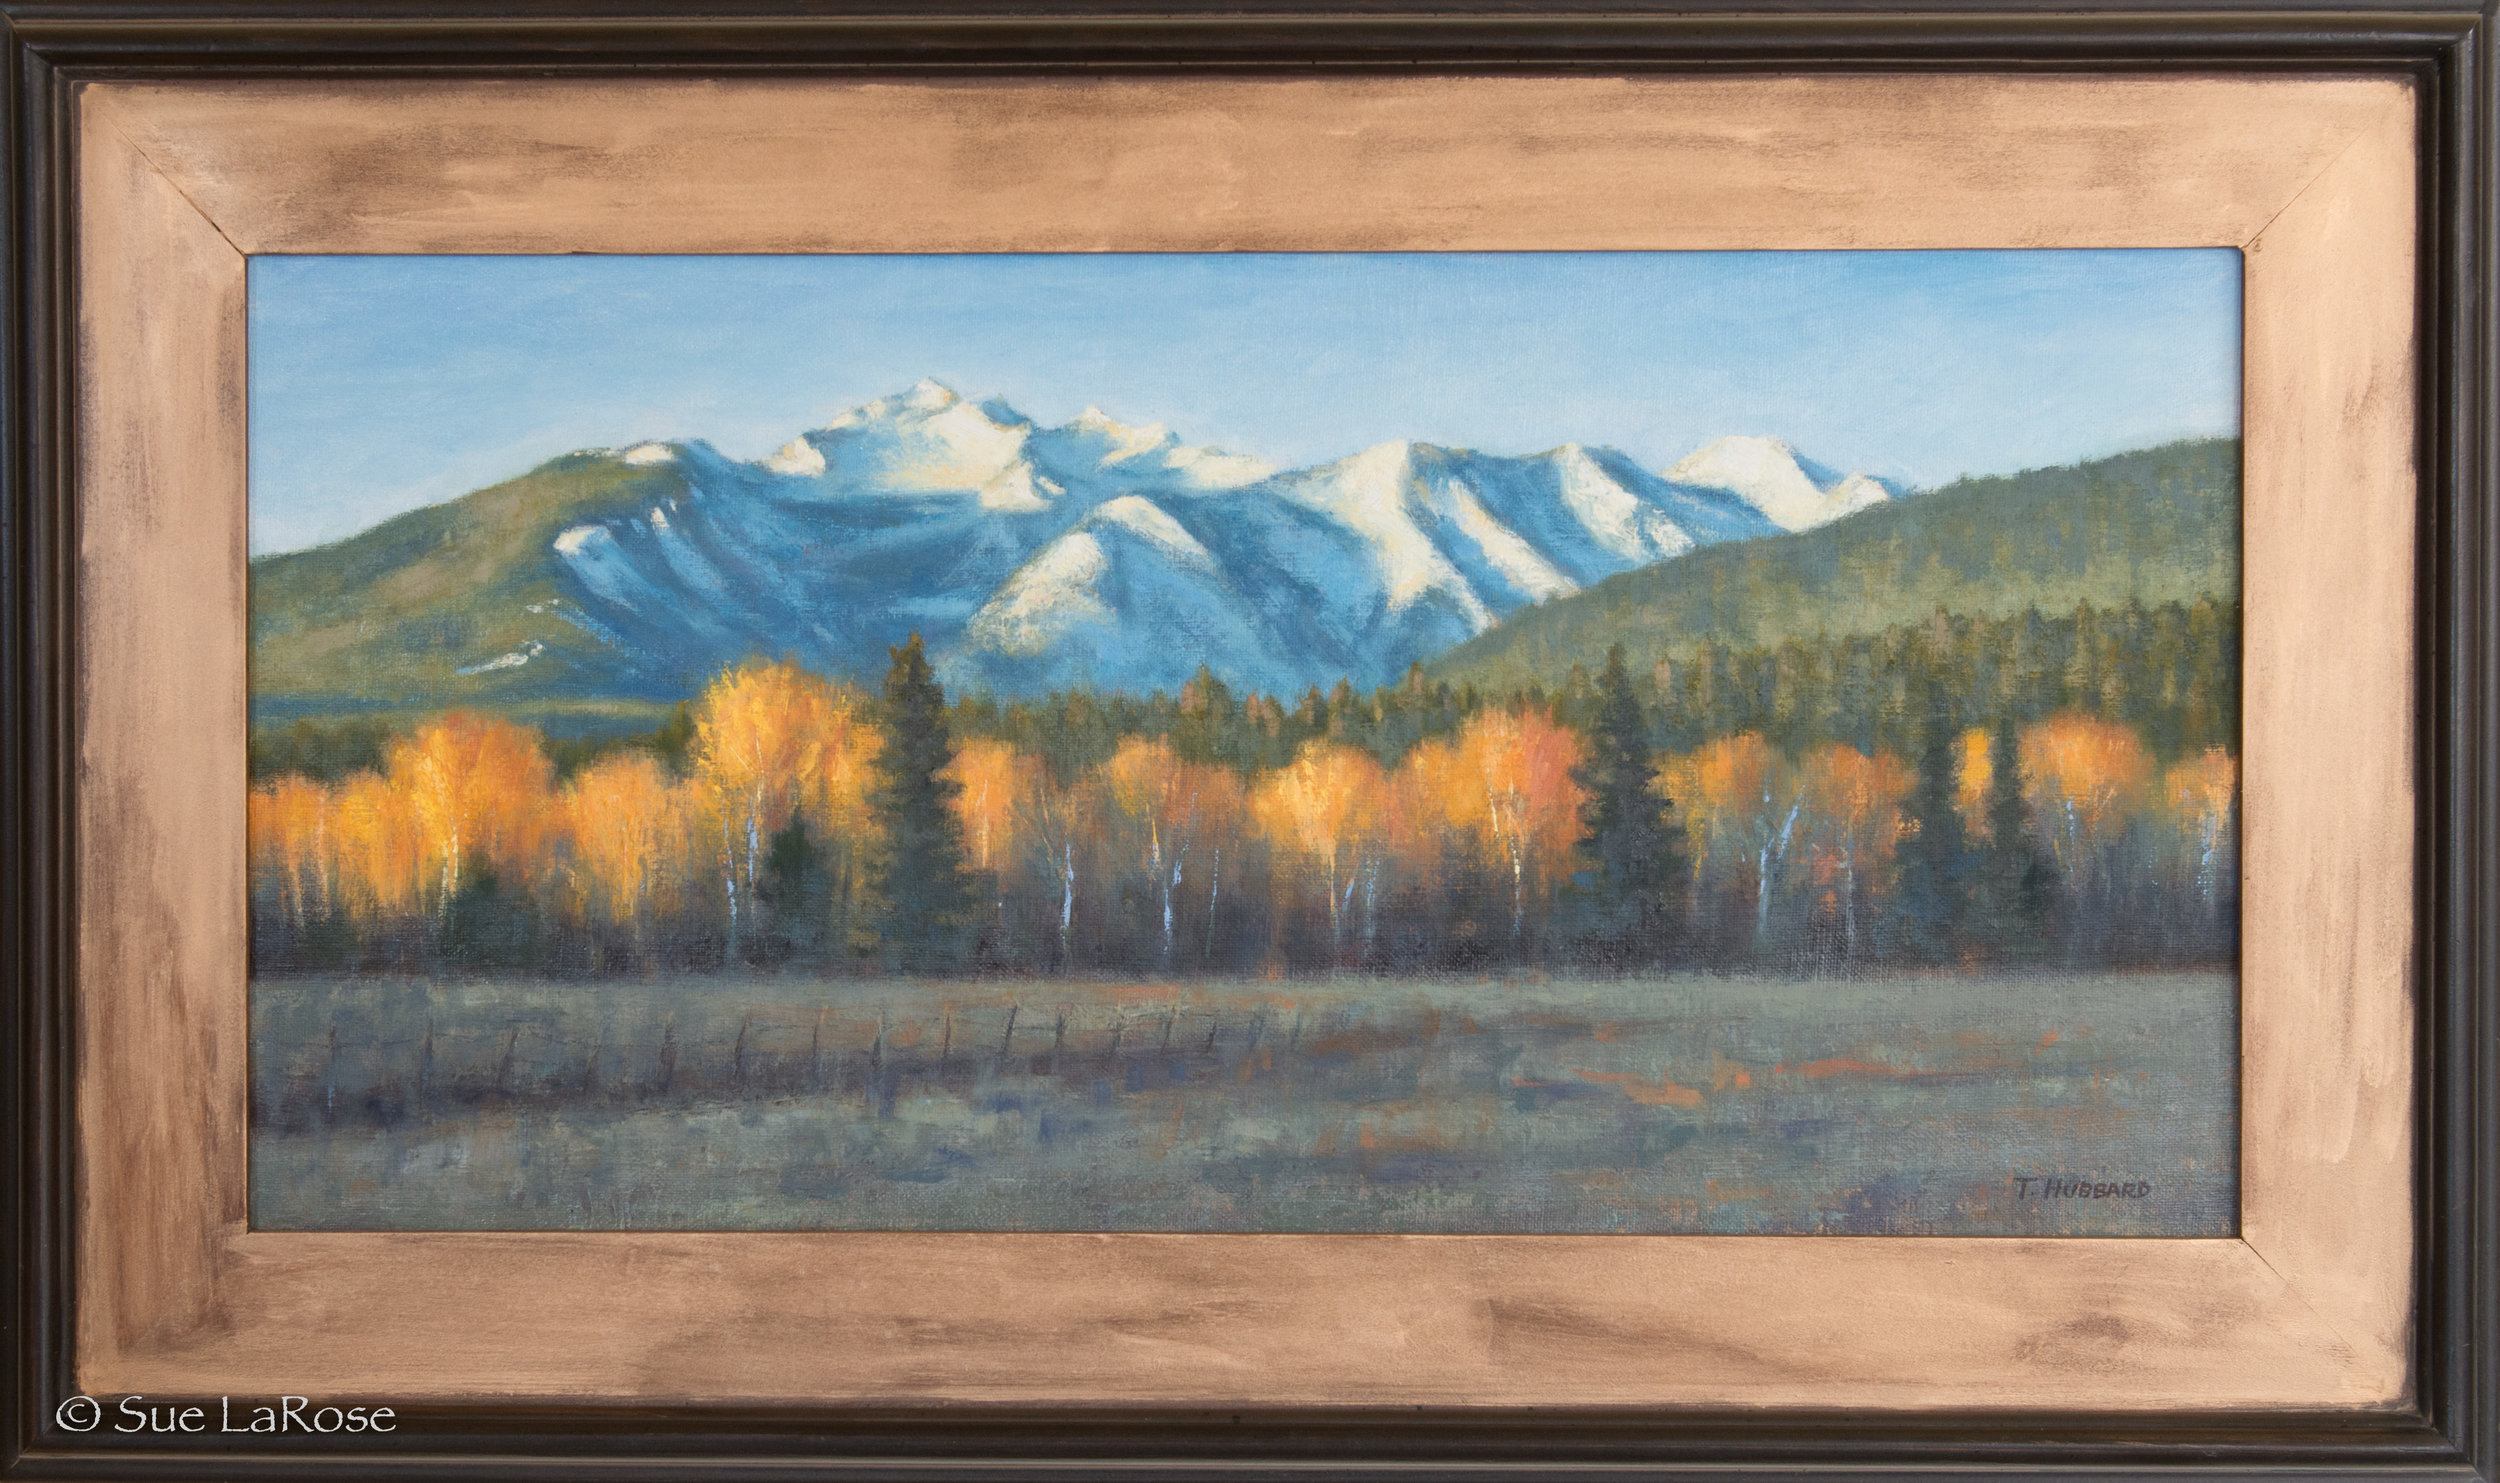 THREE SISTERS AT DAWN, 30x18, oil on canvas by Tracie Hubbard -